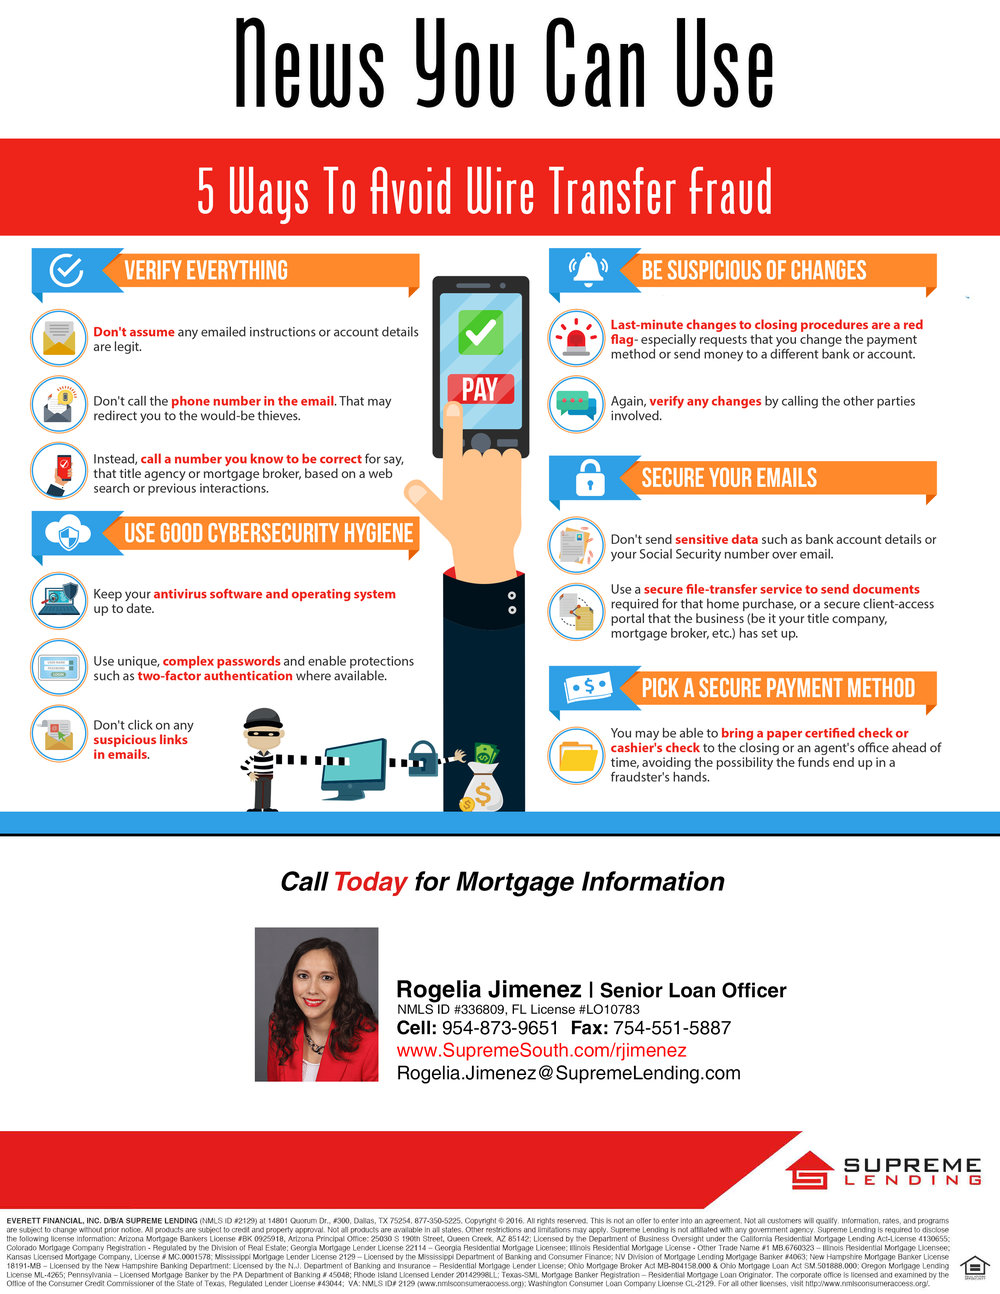 Avoiding Wire Transfer Fraud Part 2 — Personal & Professional Best